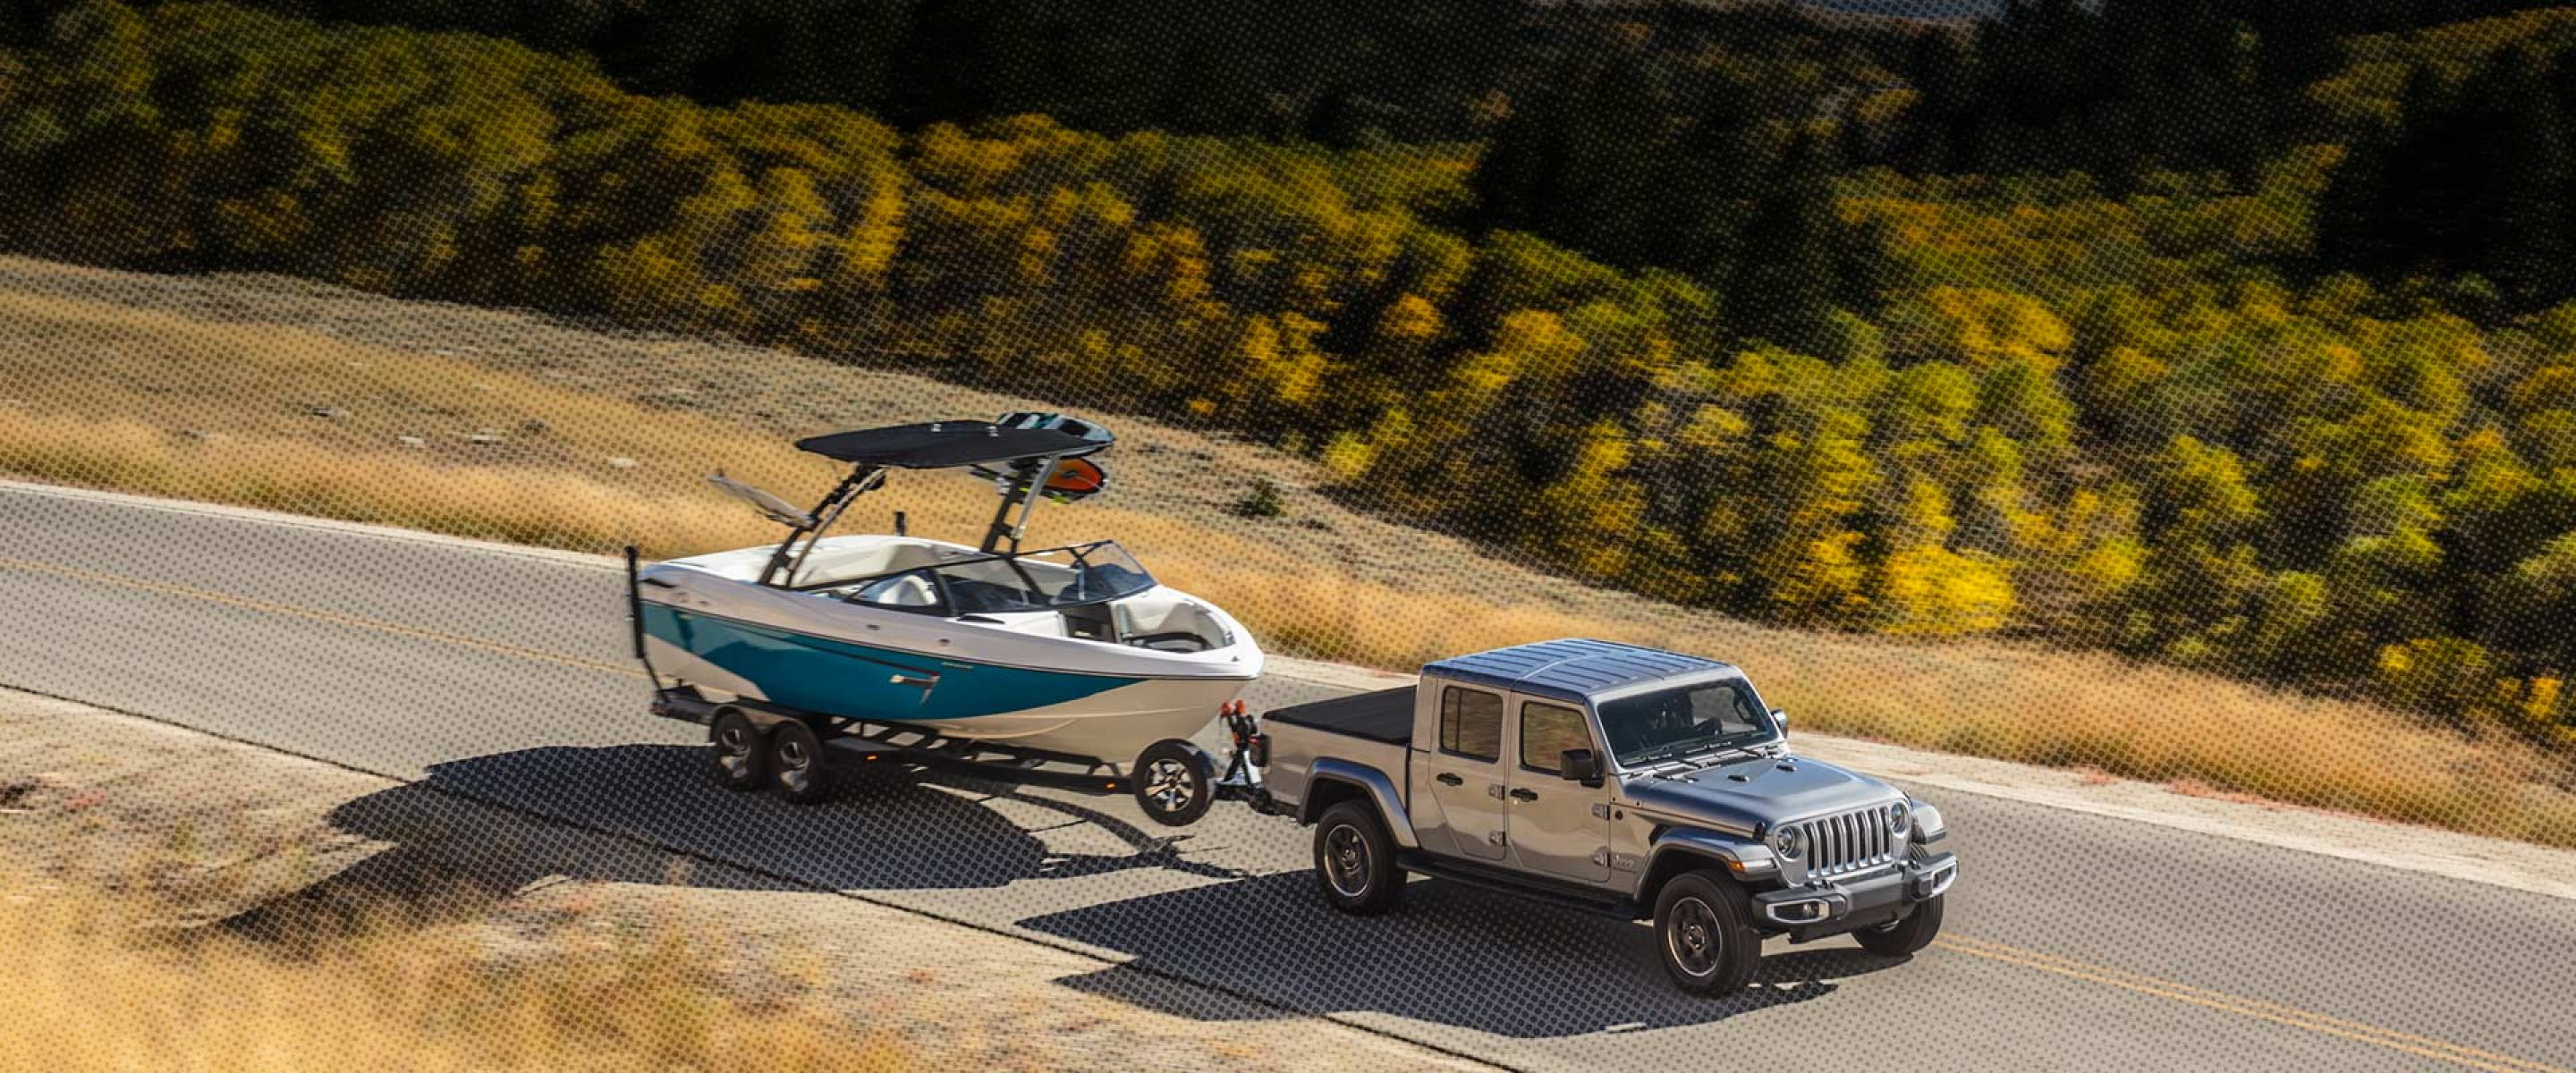 2020-Jeep-Gladiator-Utility-Hero-Towing-Desktop